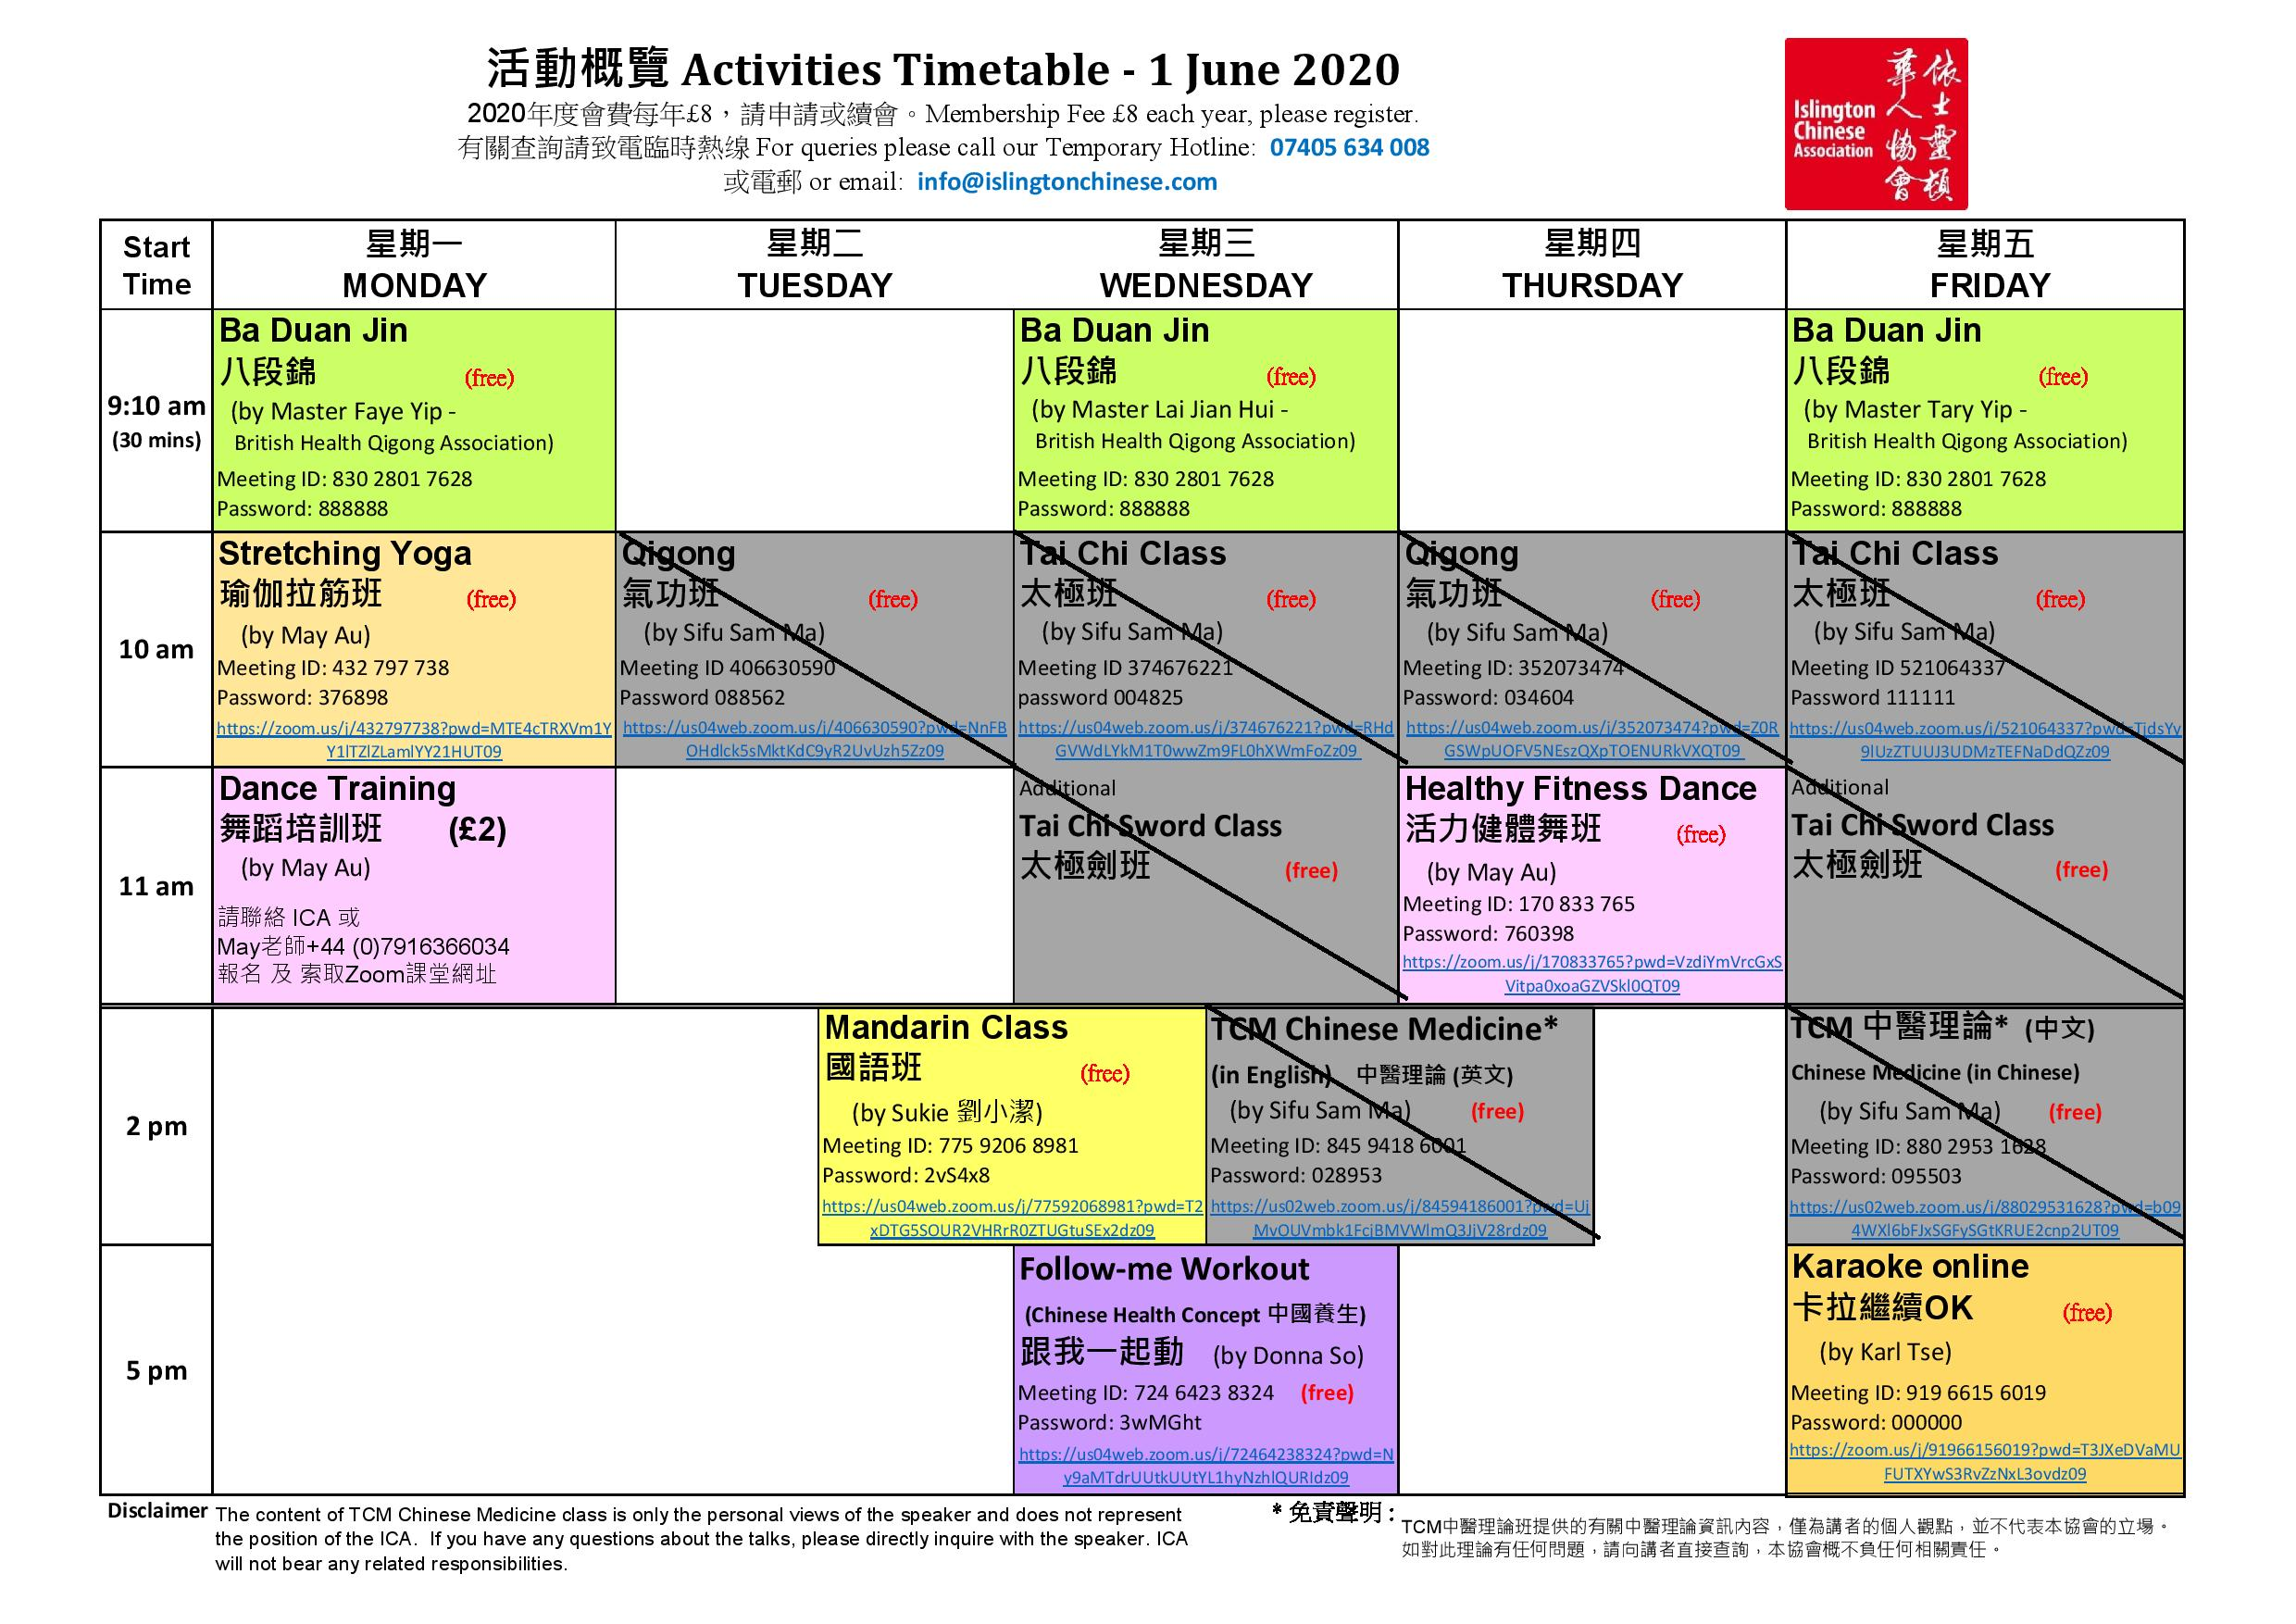 ica-activities-timetable-2020_06_01-page-001-1